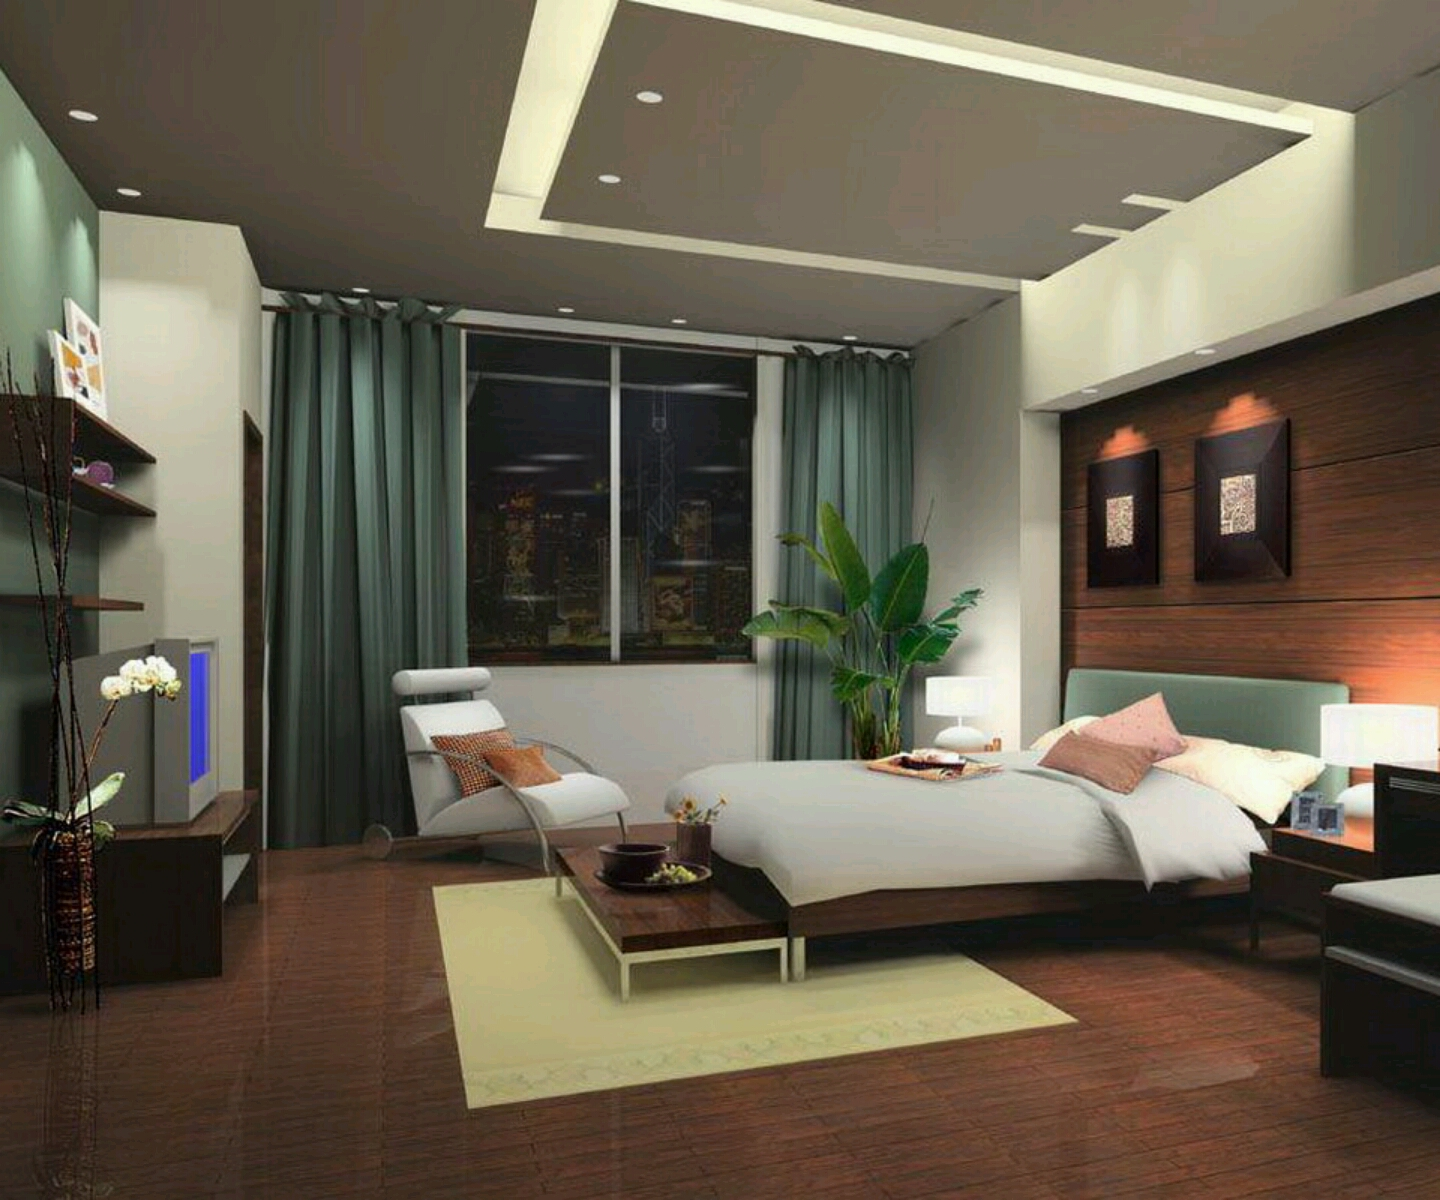 new home designs latest modern bedrooms designs best ideas On new bedroom design ideas